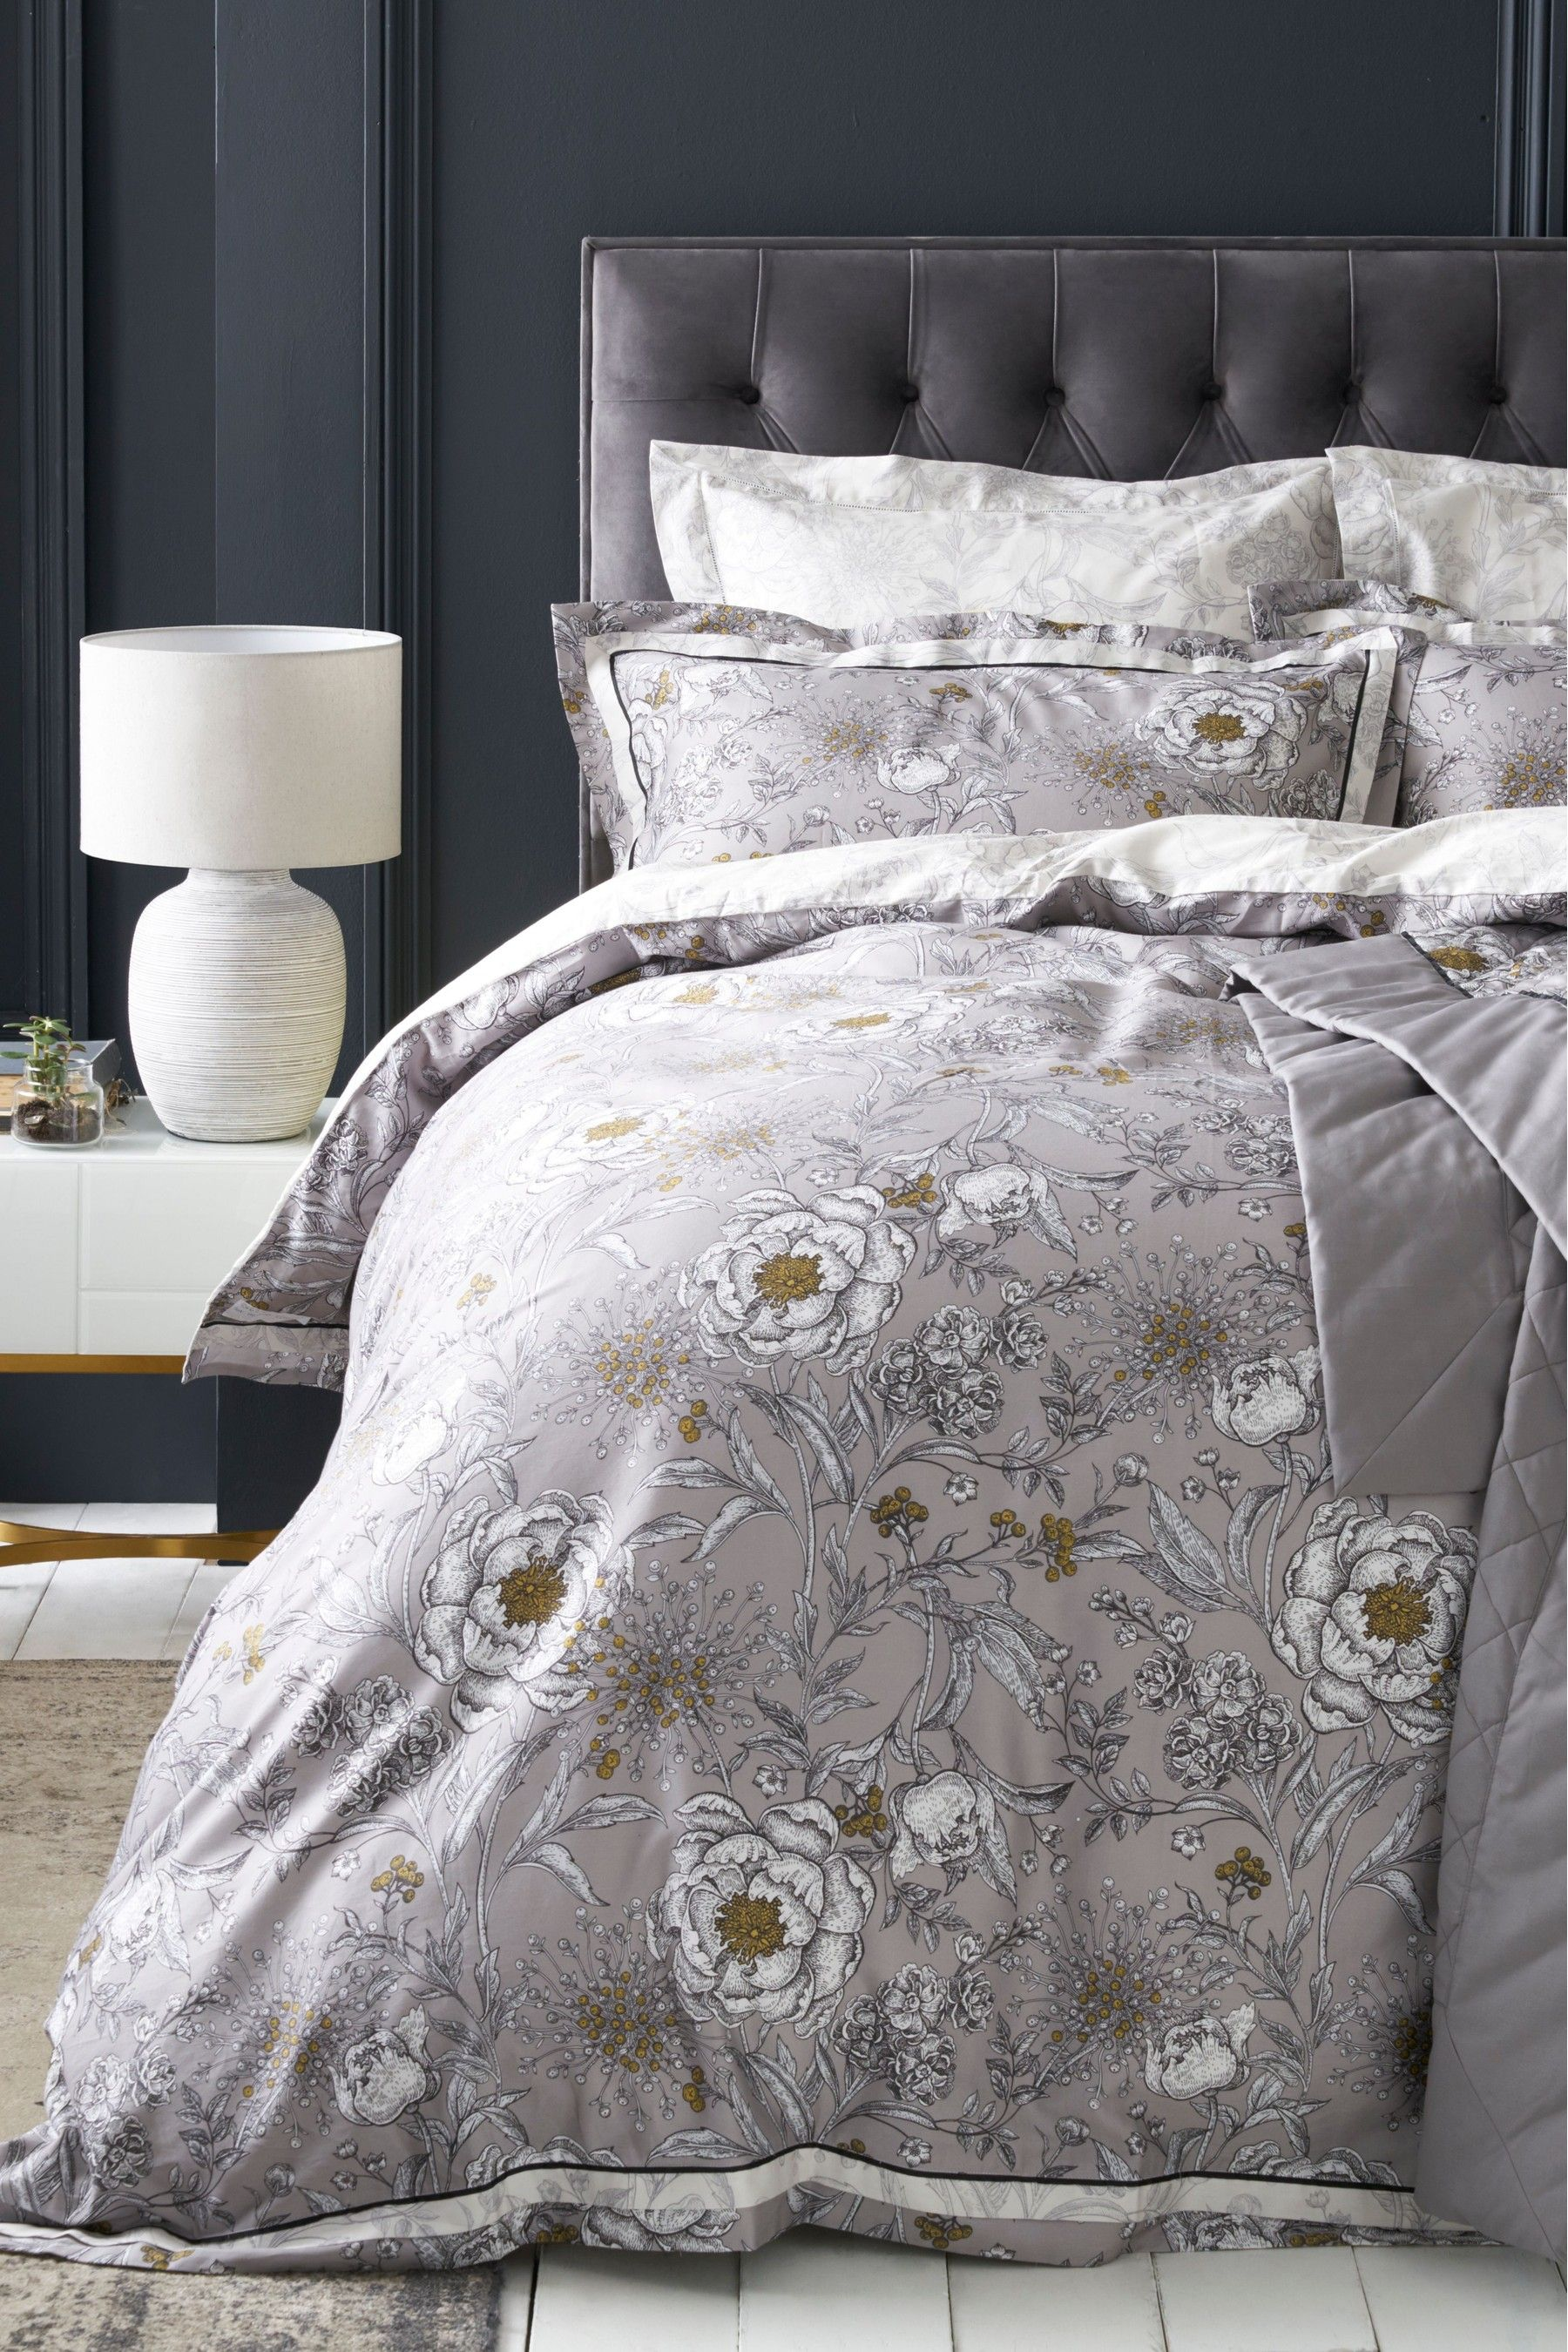 Buy Heritage Floral Duvet Cover And Pillowcase Set From The Next Uk Online Shop Bed Linens Luxury Gray Duvet Cover King Bedding Sets